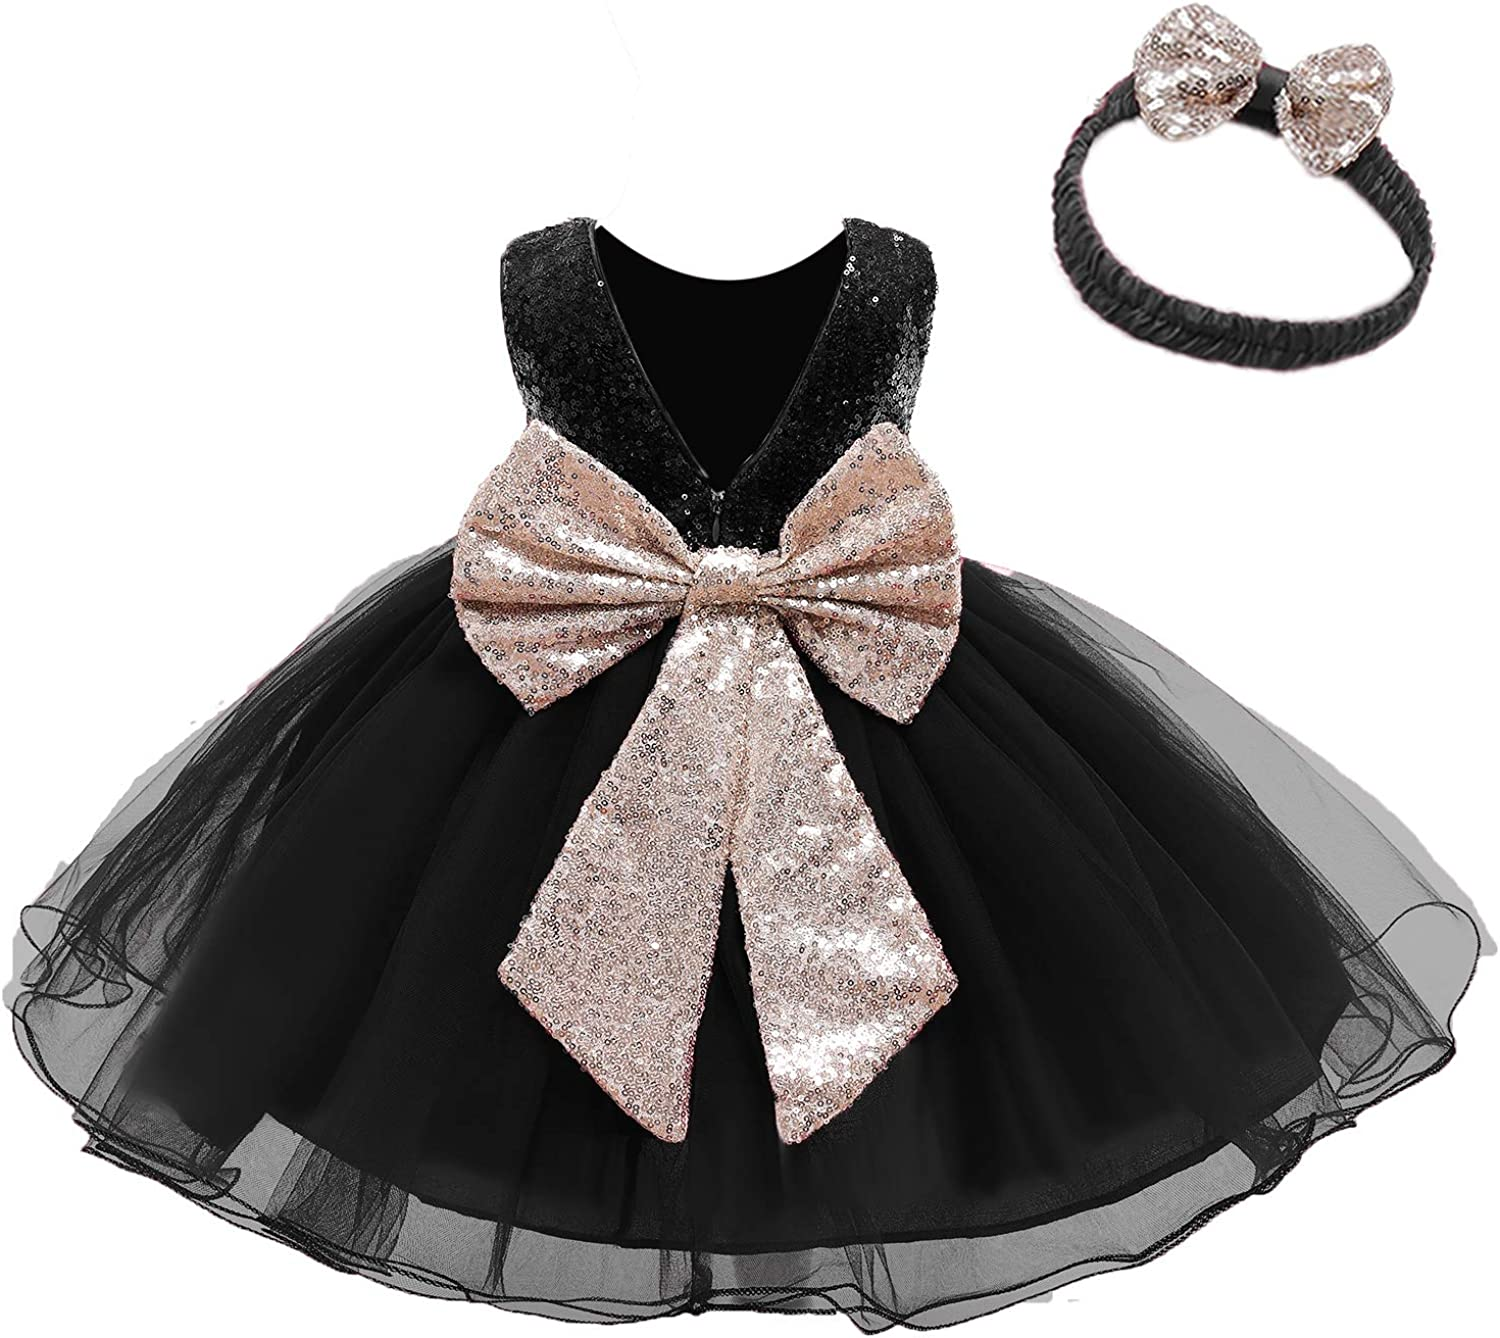 12M-6T Baby Dress Sequins Bowknot Flower Girl Dresses Lace Pageant Party Wedding Tutu Gown: Clothing, Shoes & Jewelry